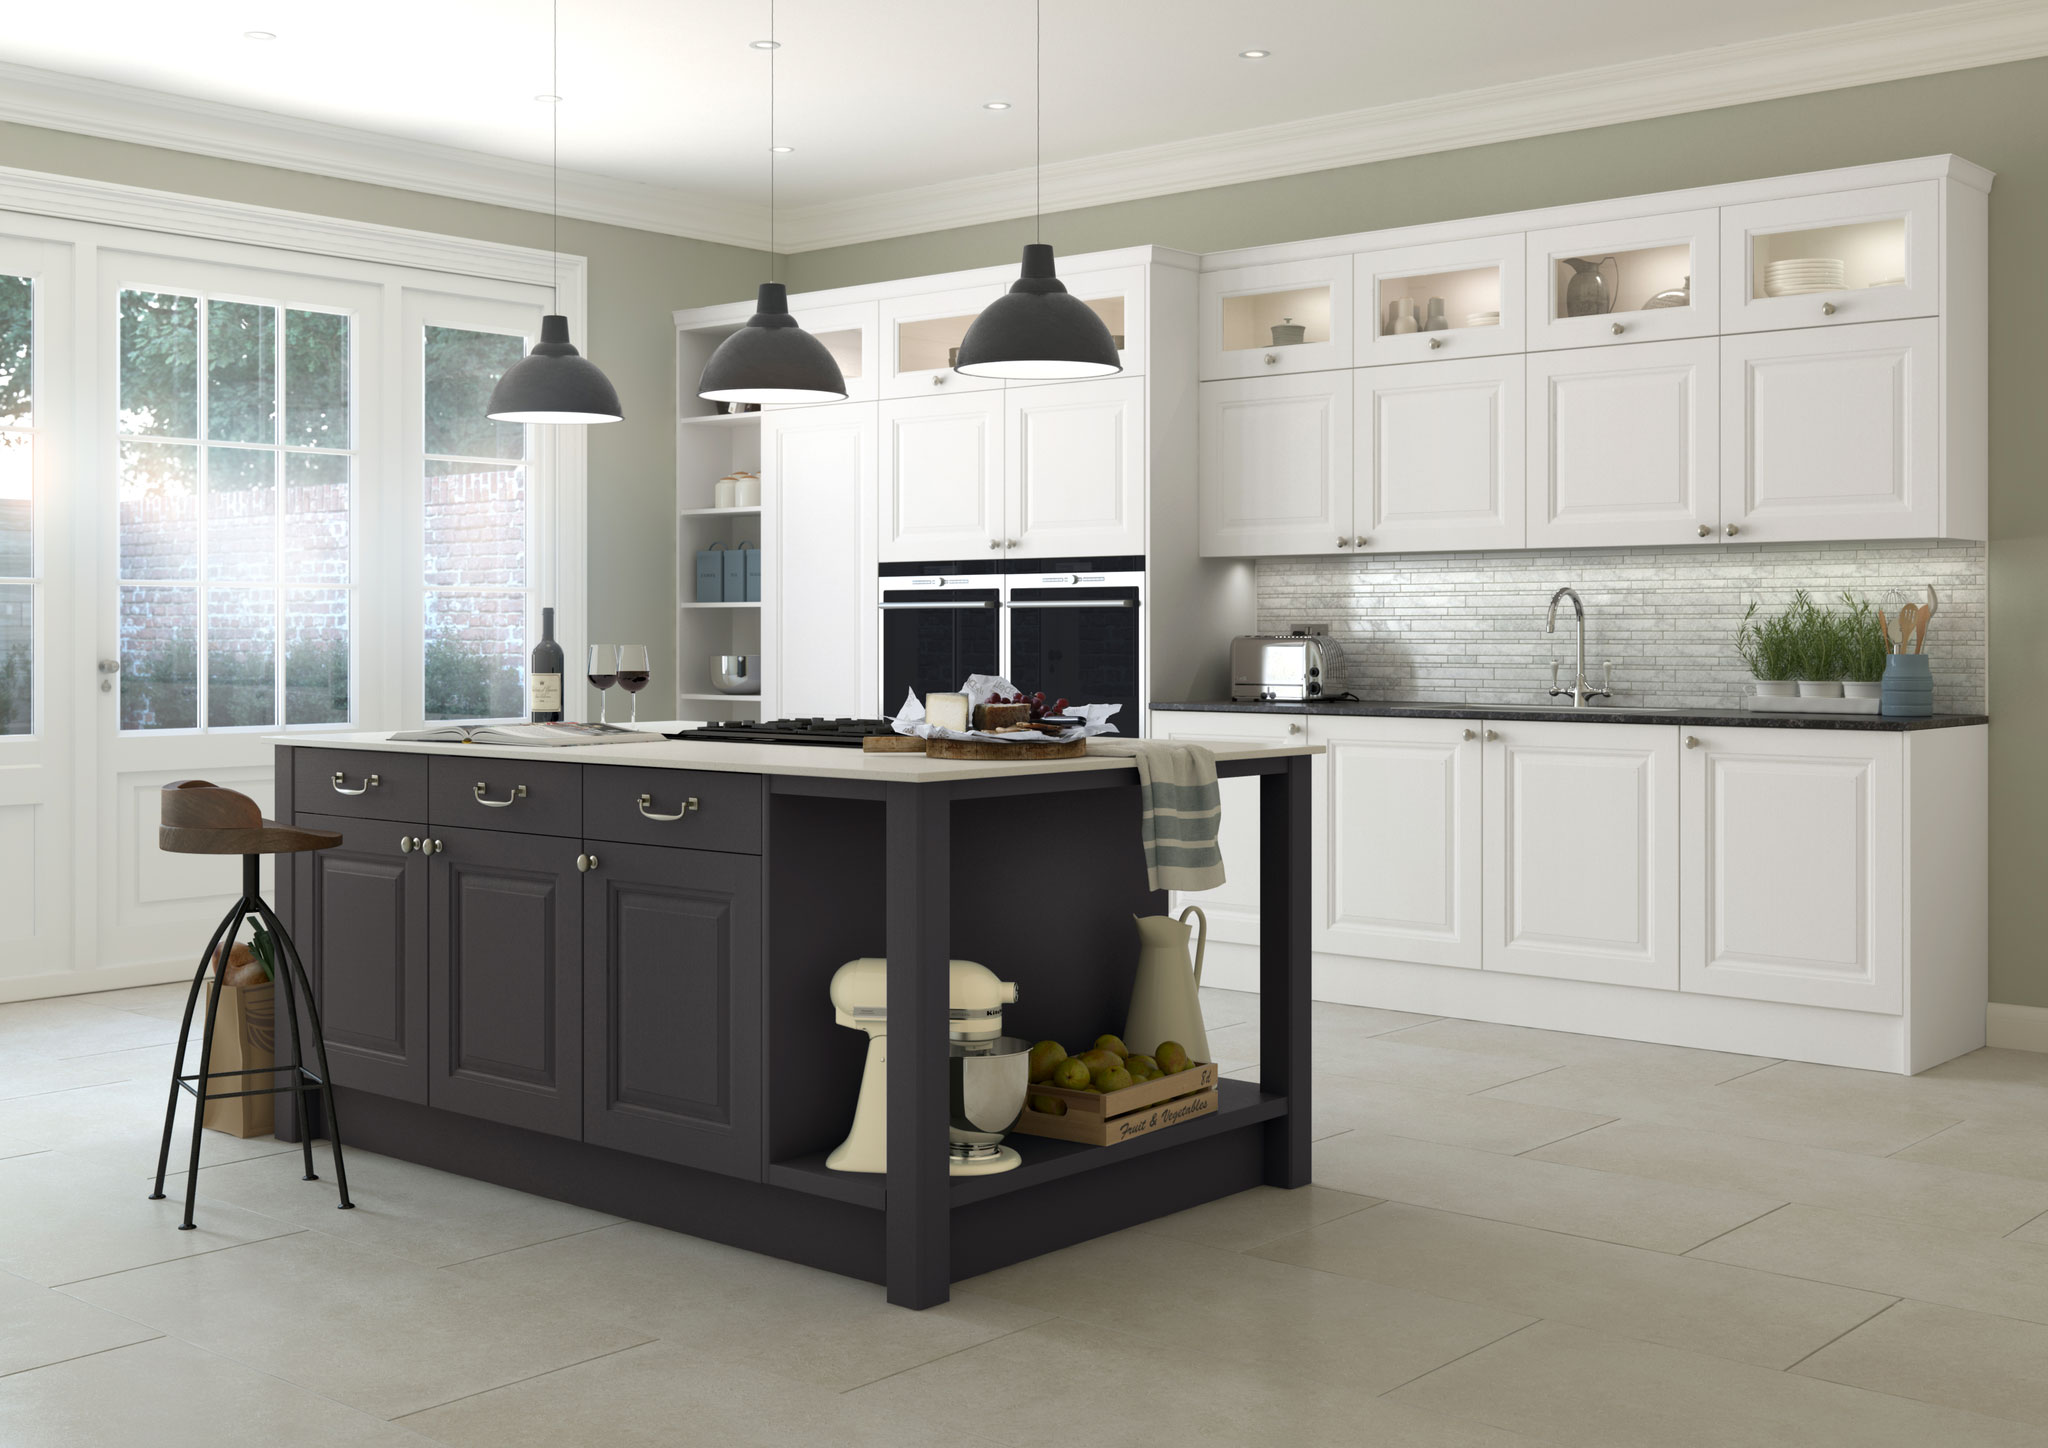 Town & Country Kitchens